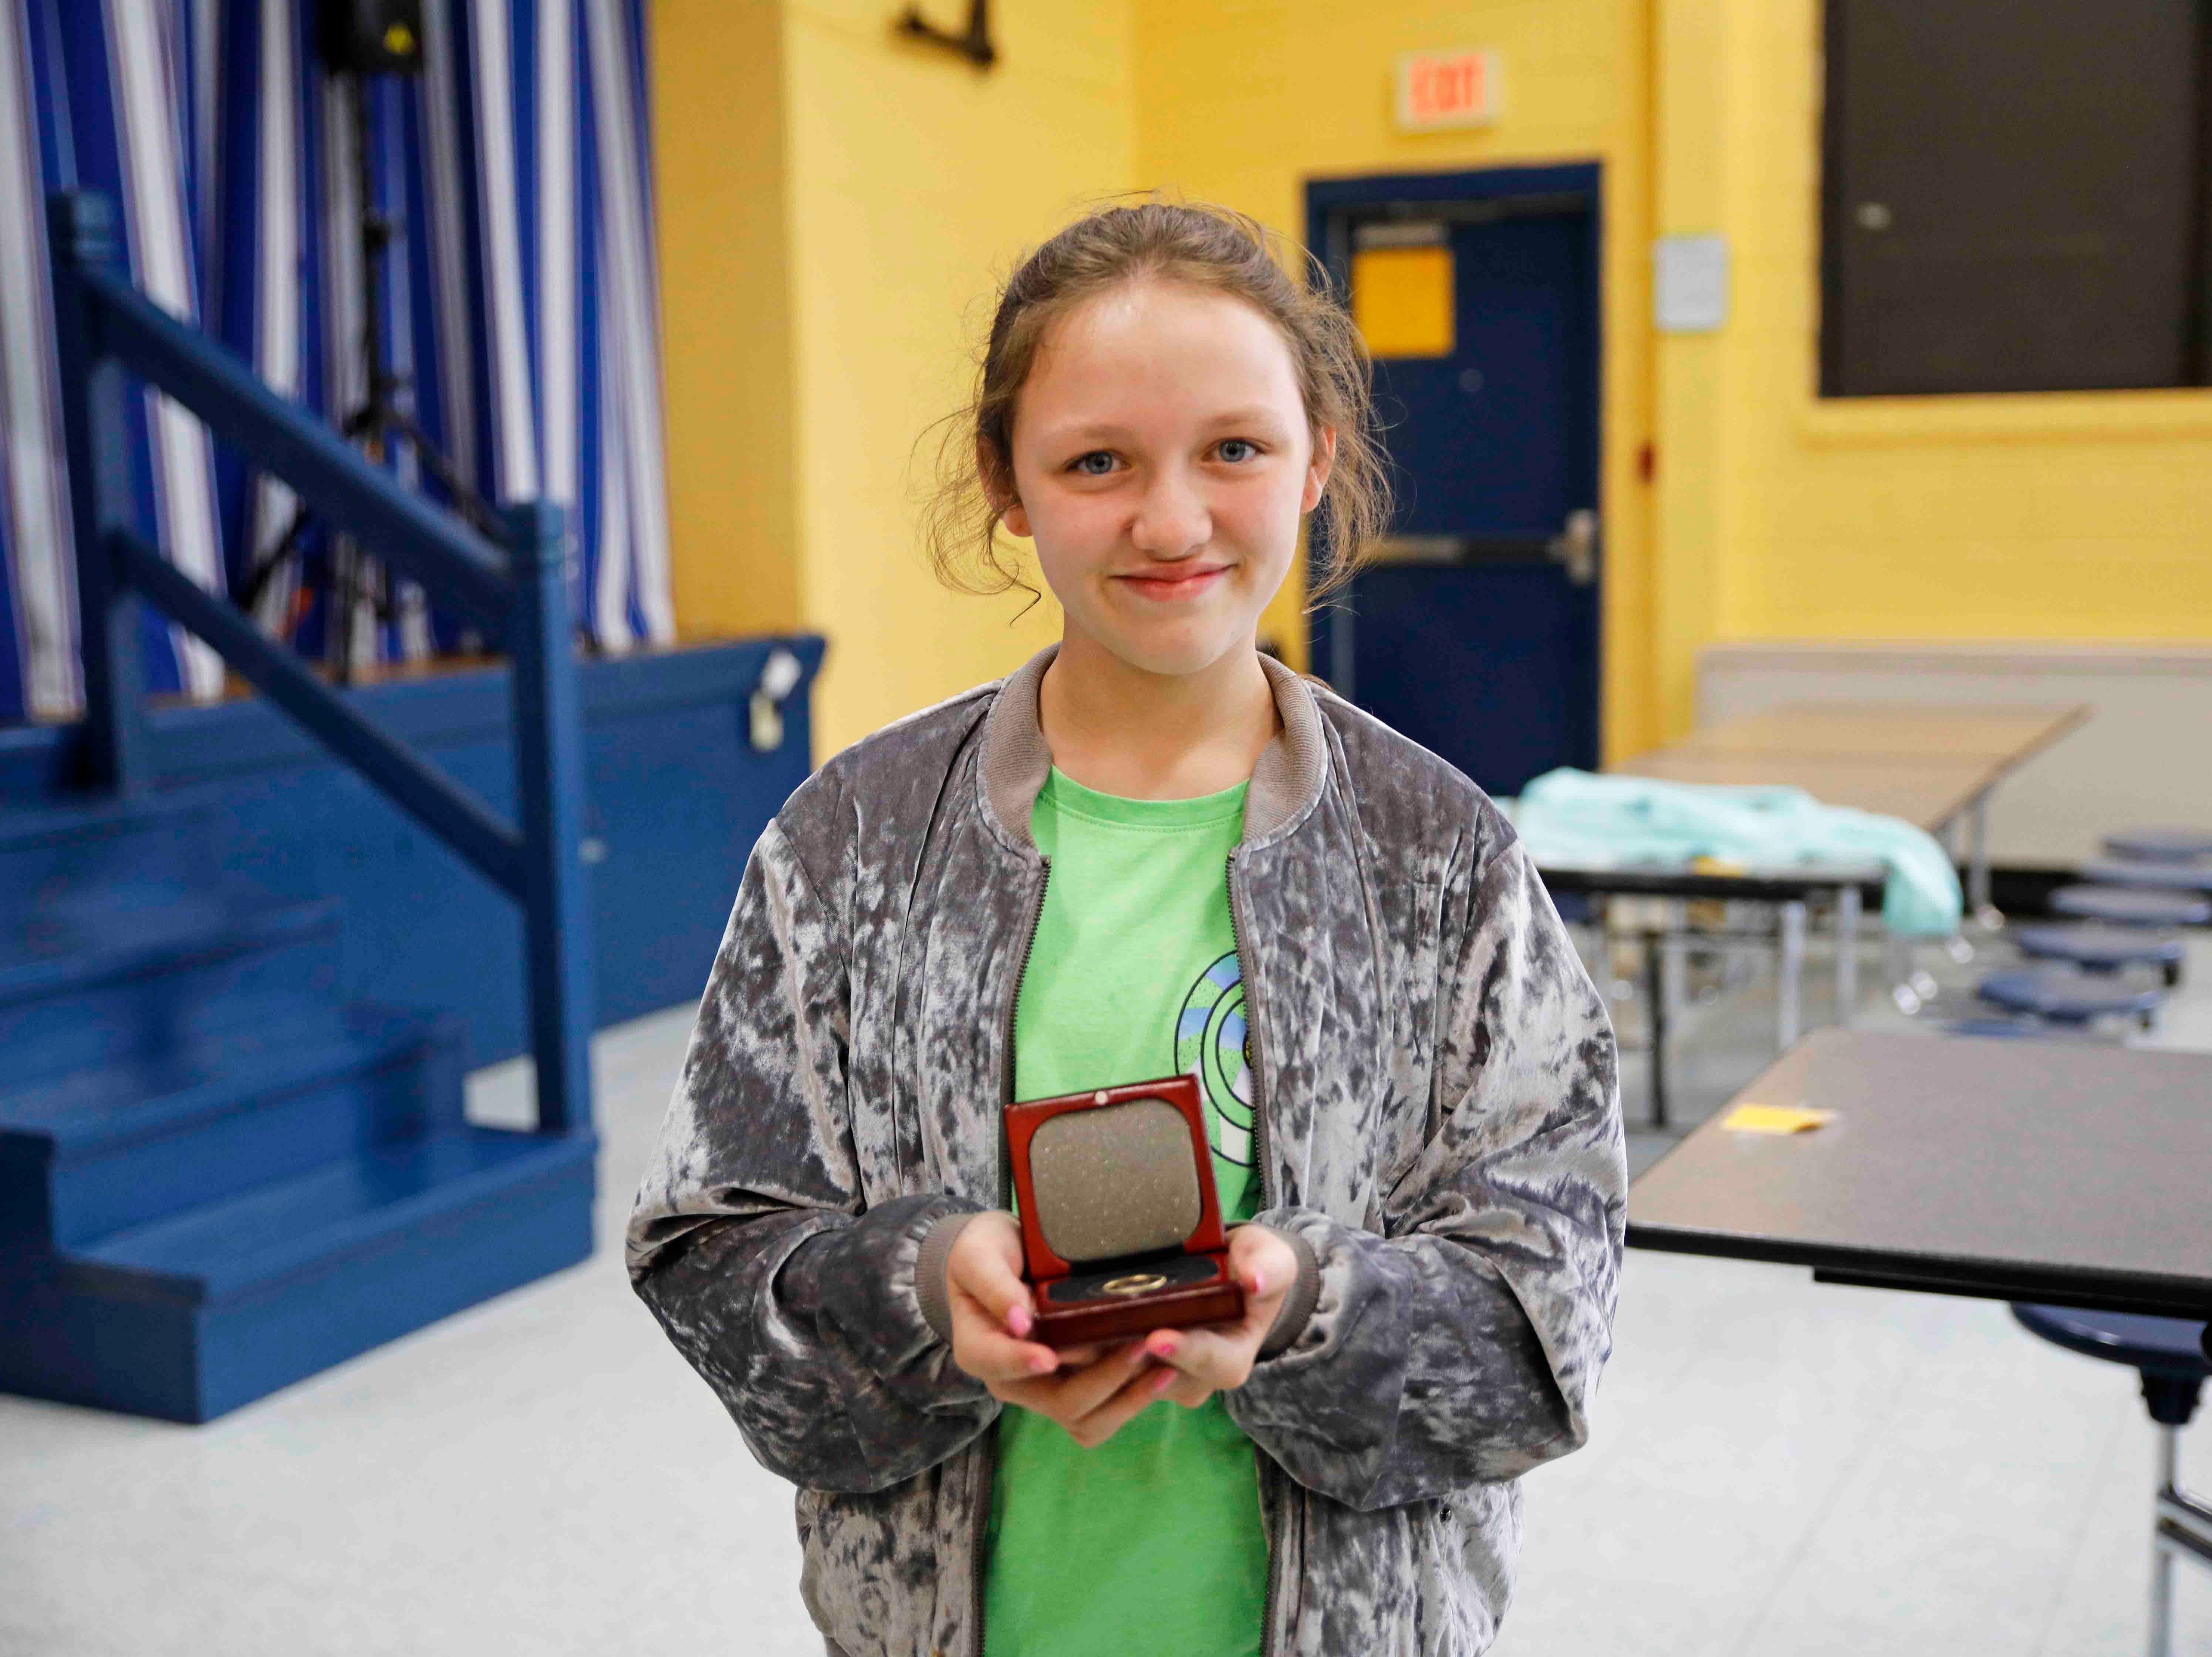 Hailie Latham, a 10-year old fourth grader at Moore Magnet Elementary, shows off her award after Clarksville Police honored her for heroism during a ceremony on May 15, 2019.